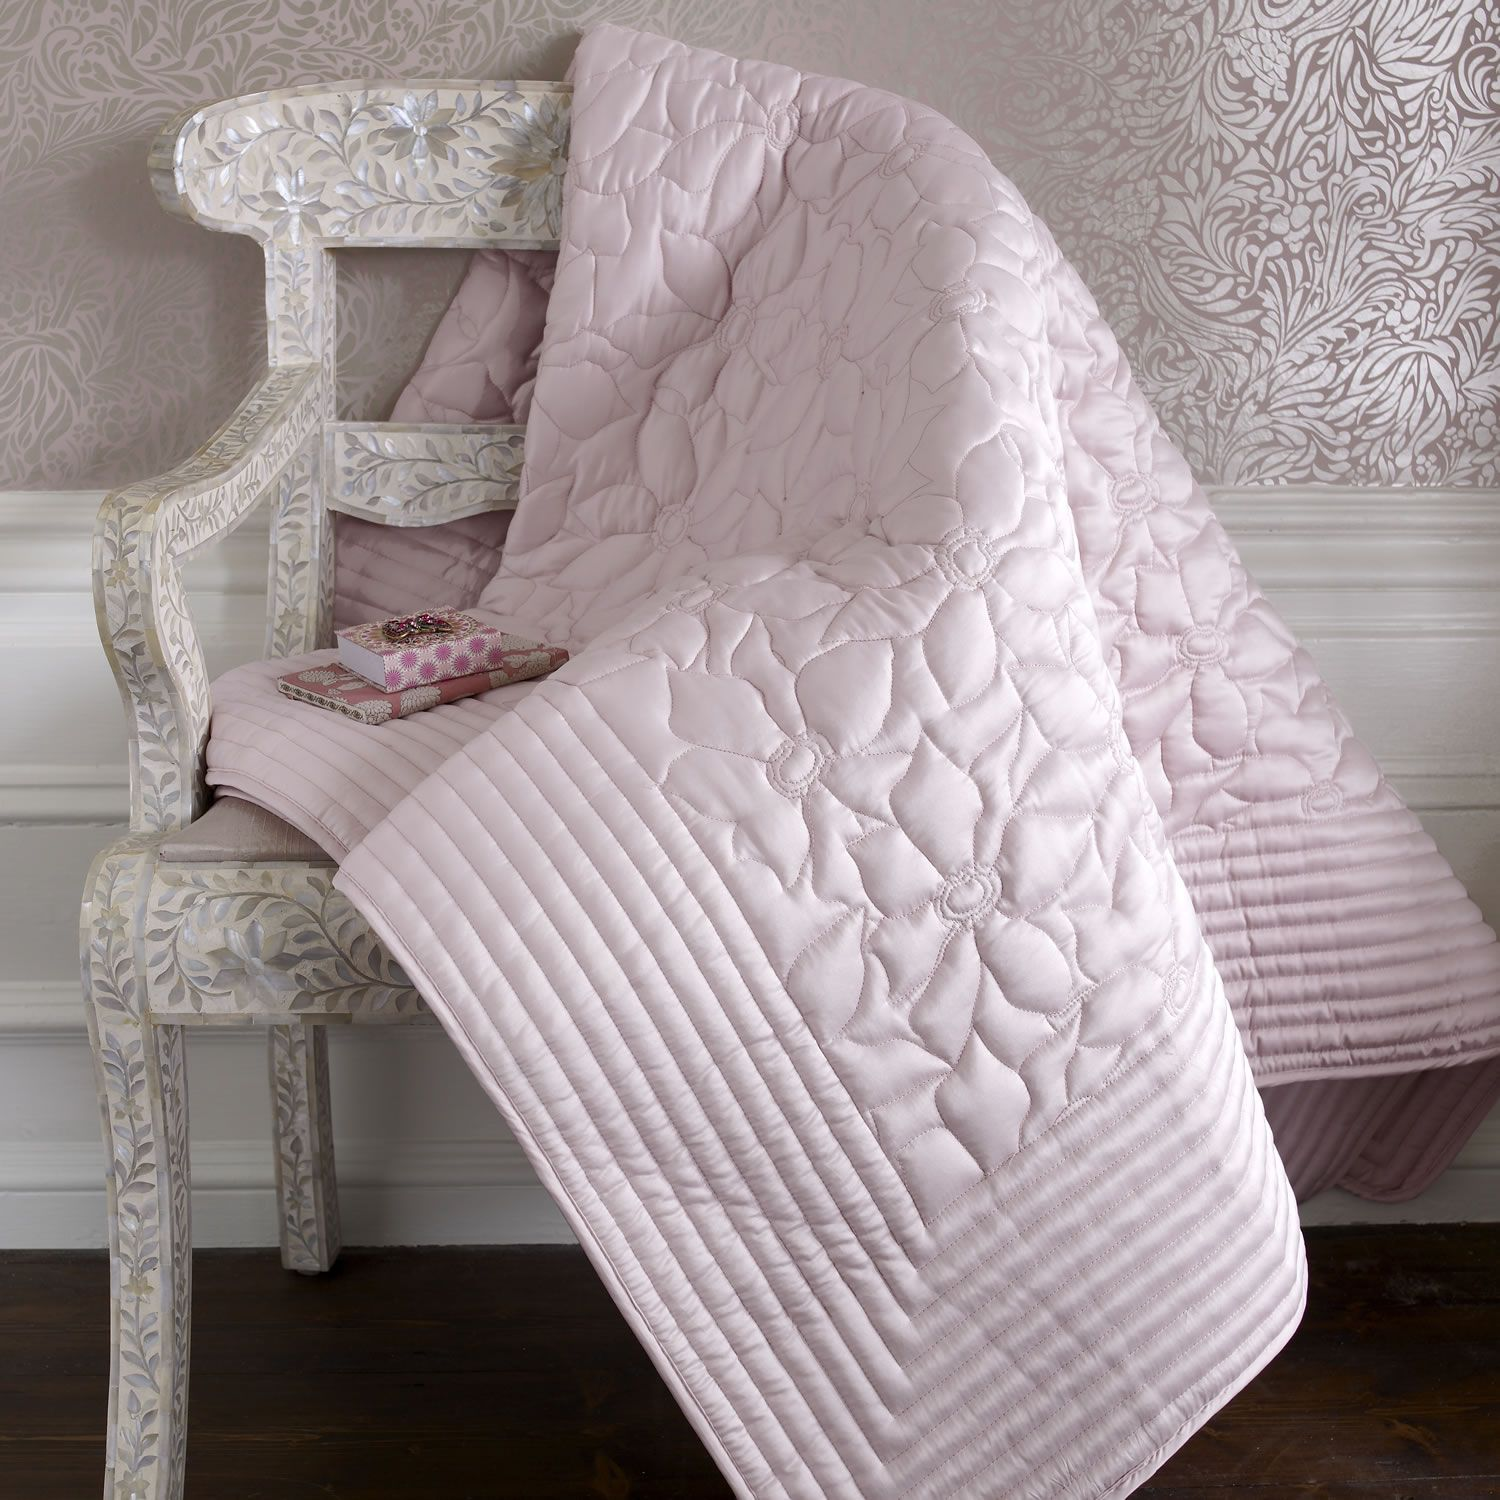 Dusky Pink Throw Http Www Worldstores Co Uk P Monsoon